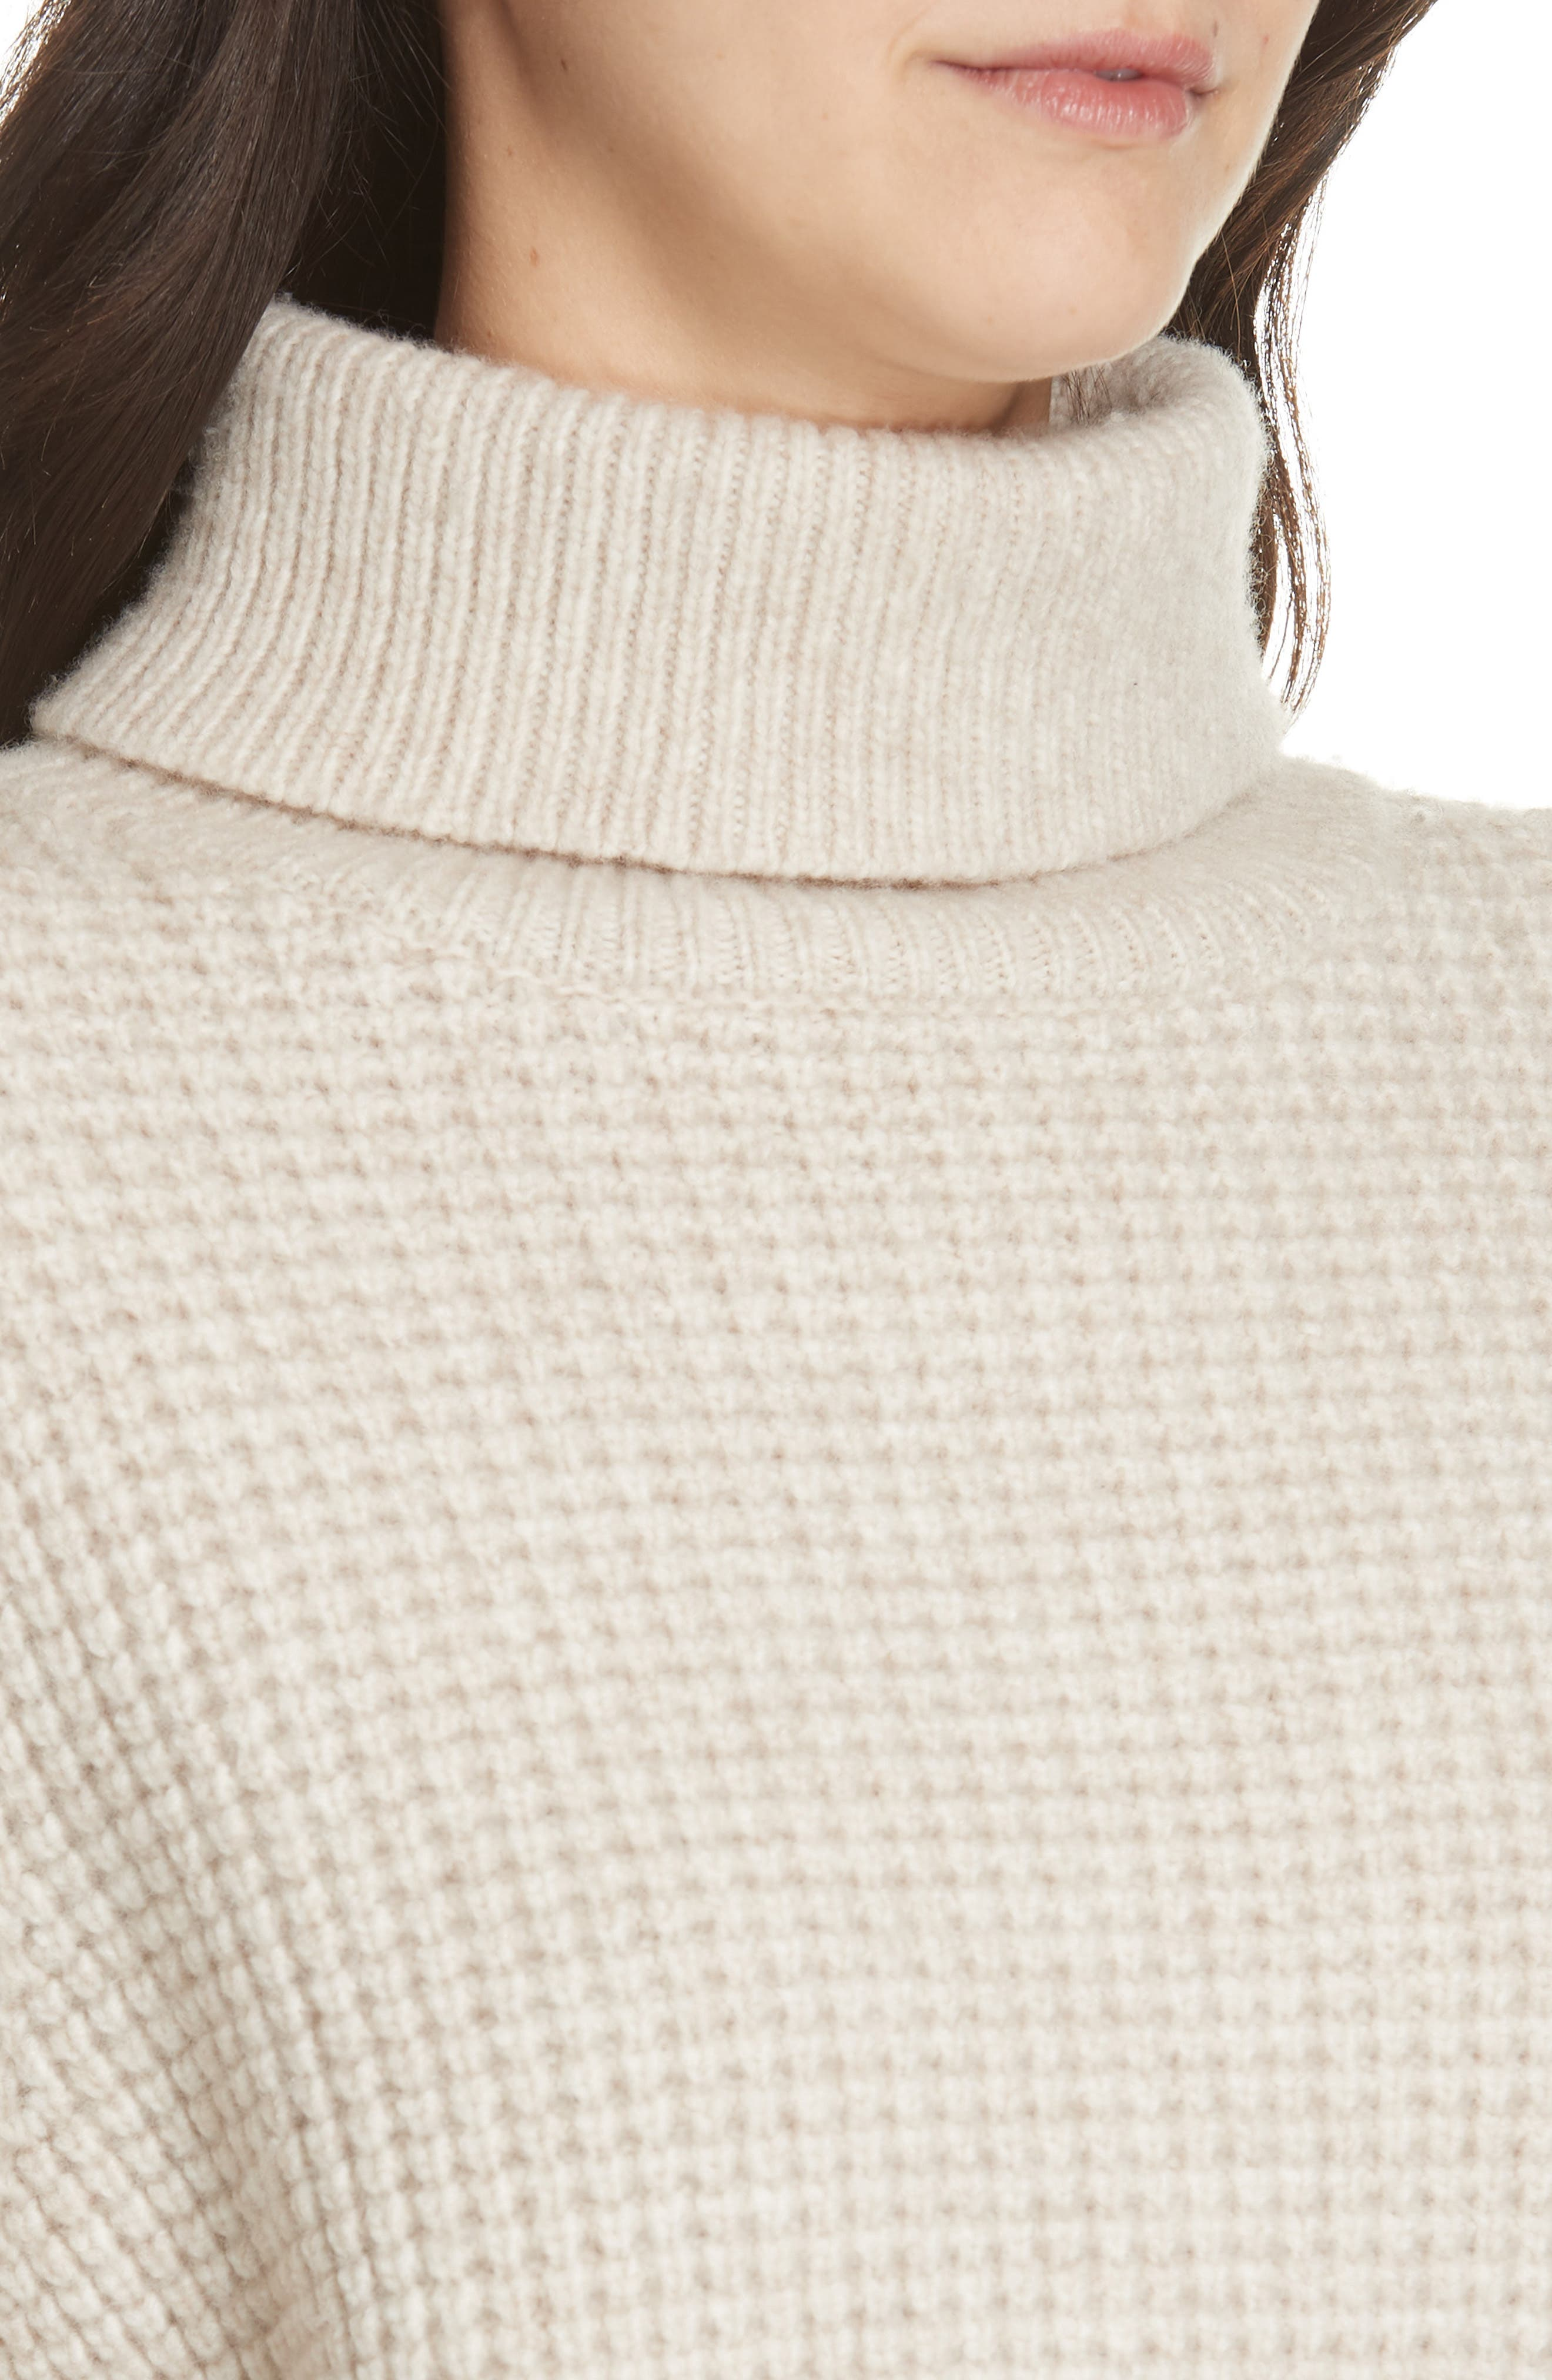 Seattle Turtleneck Sweater,                             Alternate thumbnail 4, color,                             OATMEAL